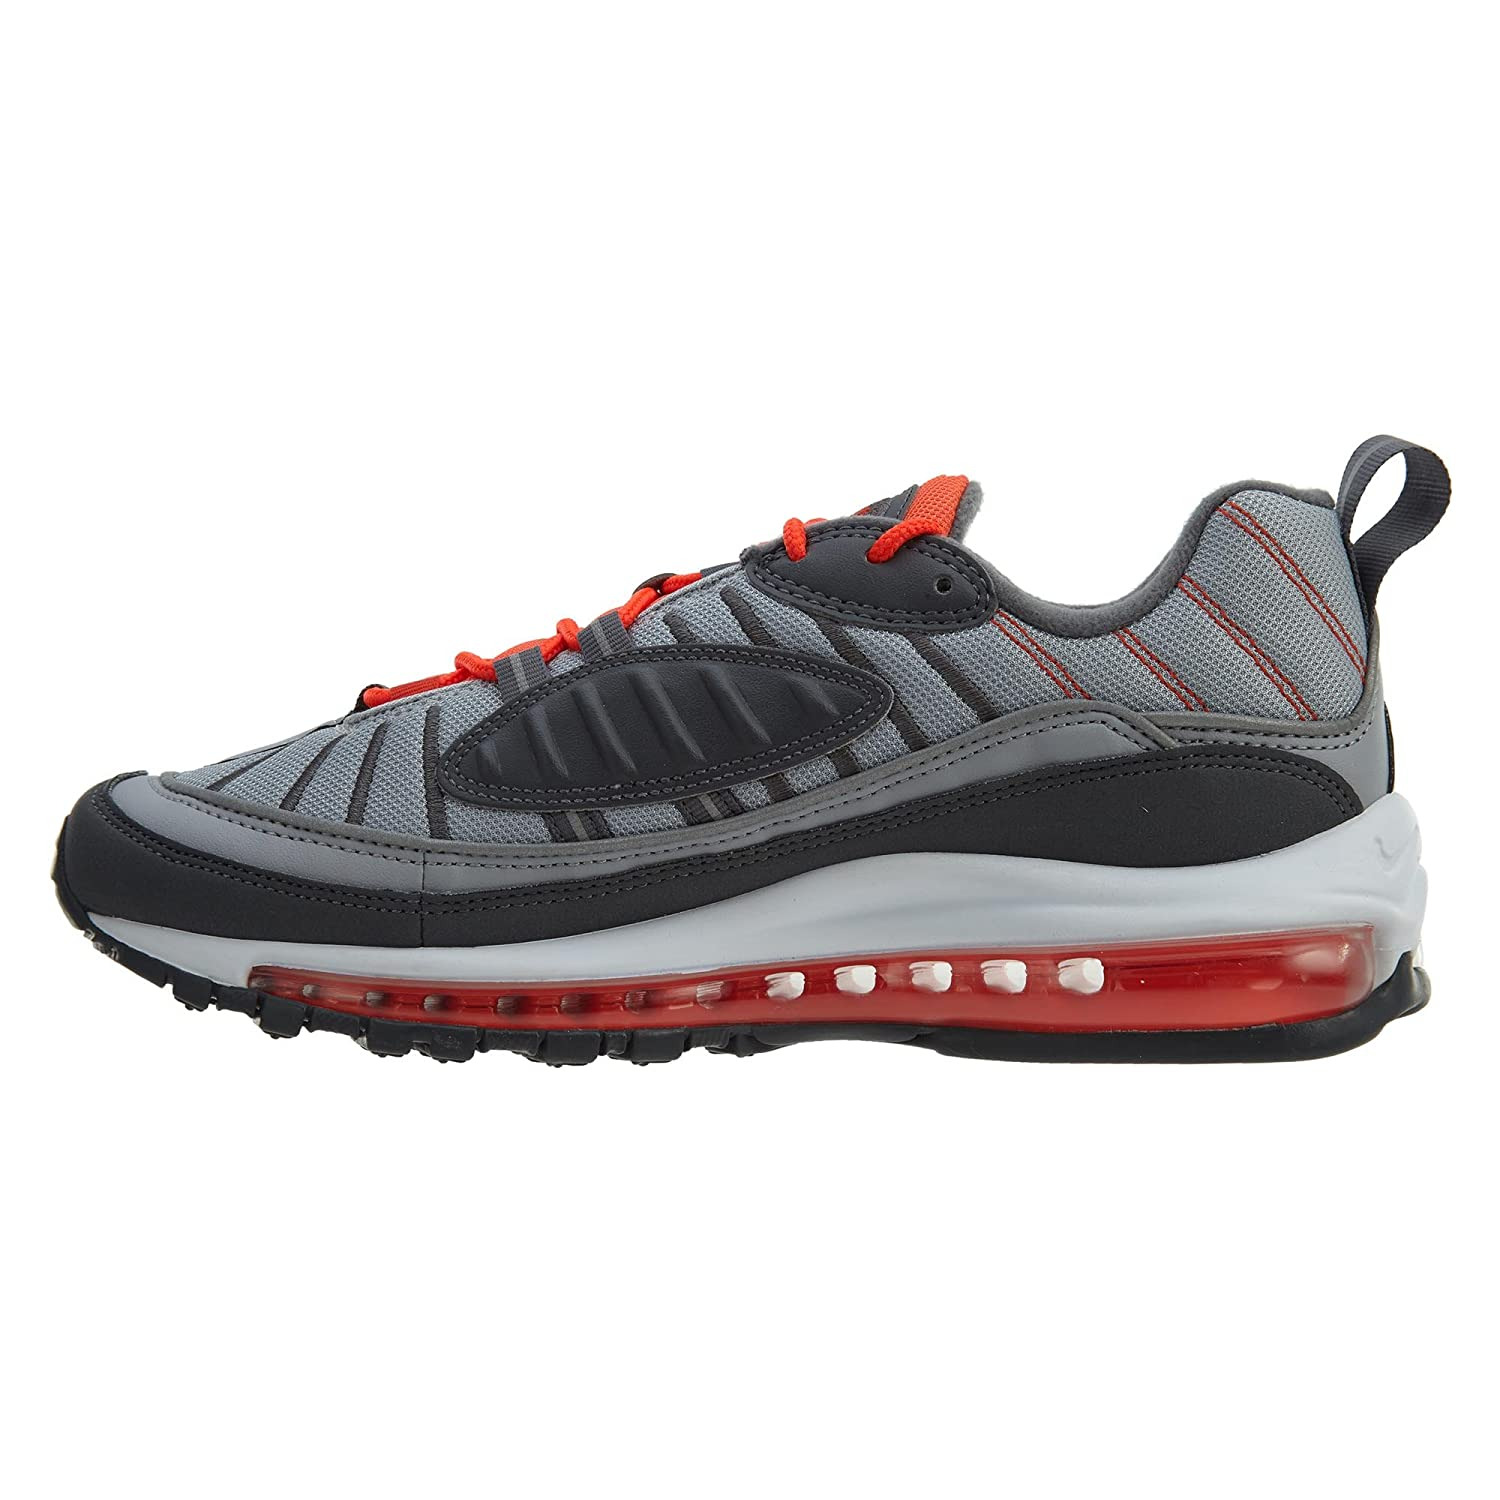 new products 29dcc 54af6 Amazon.com   NIKE Men s Air Max 98 Shoe Wolf Grey Total Crimson   Shoes